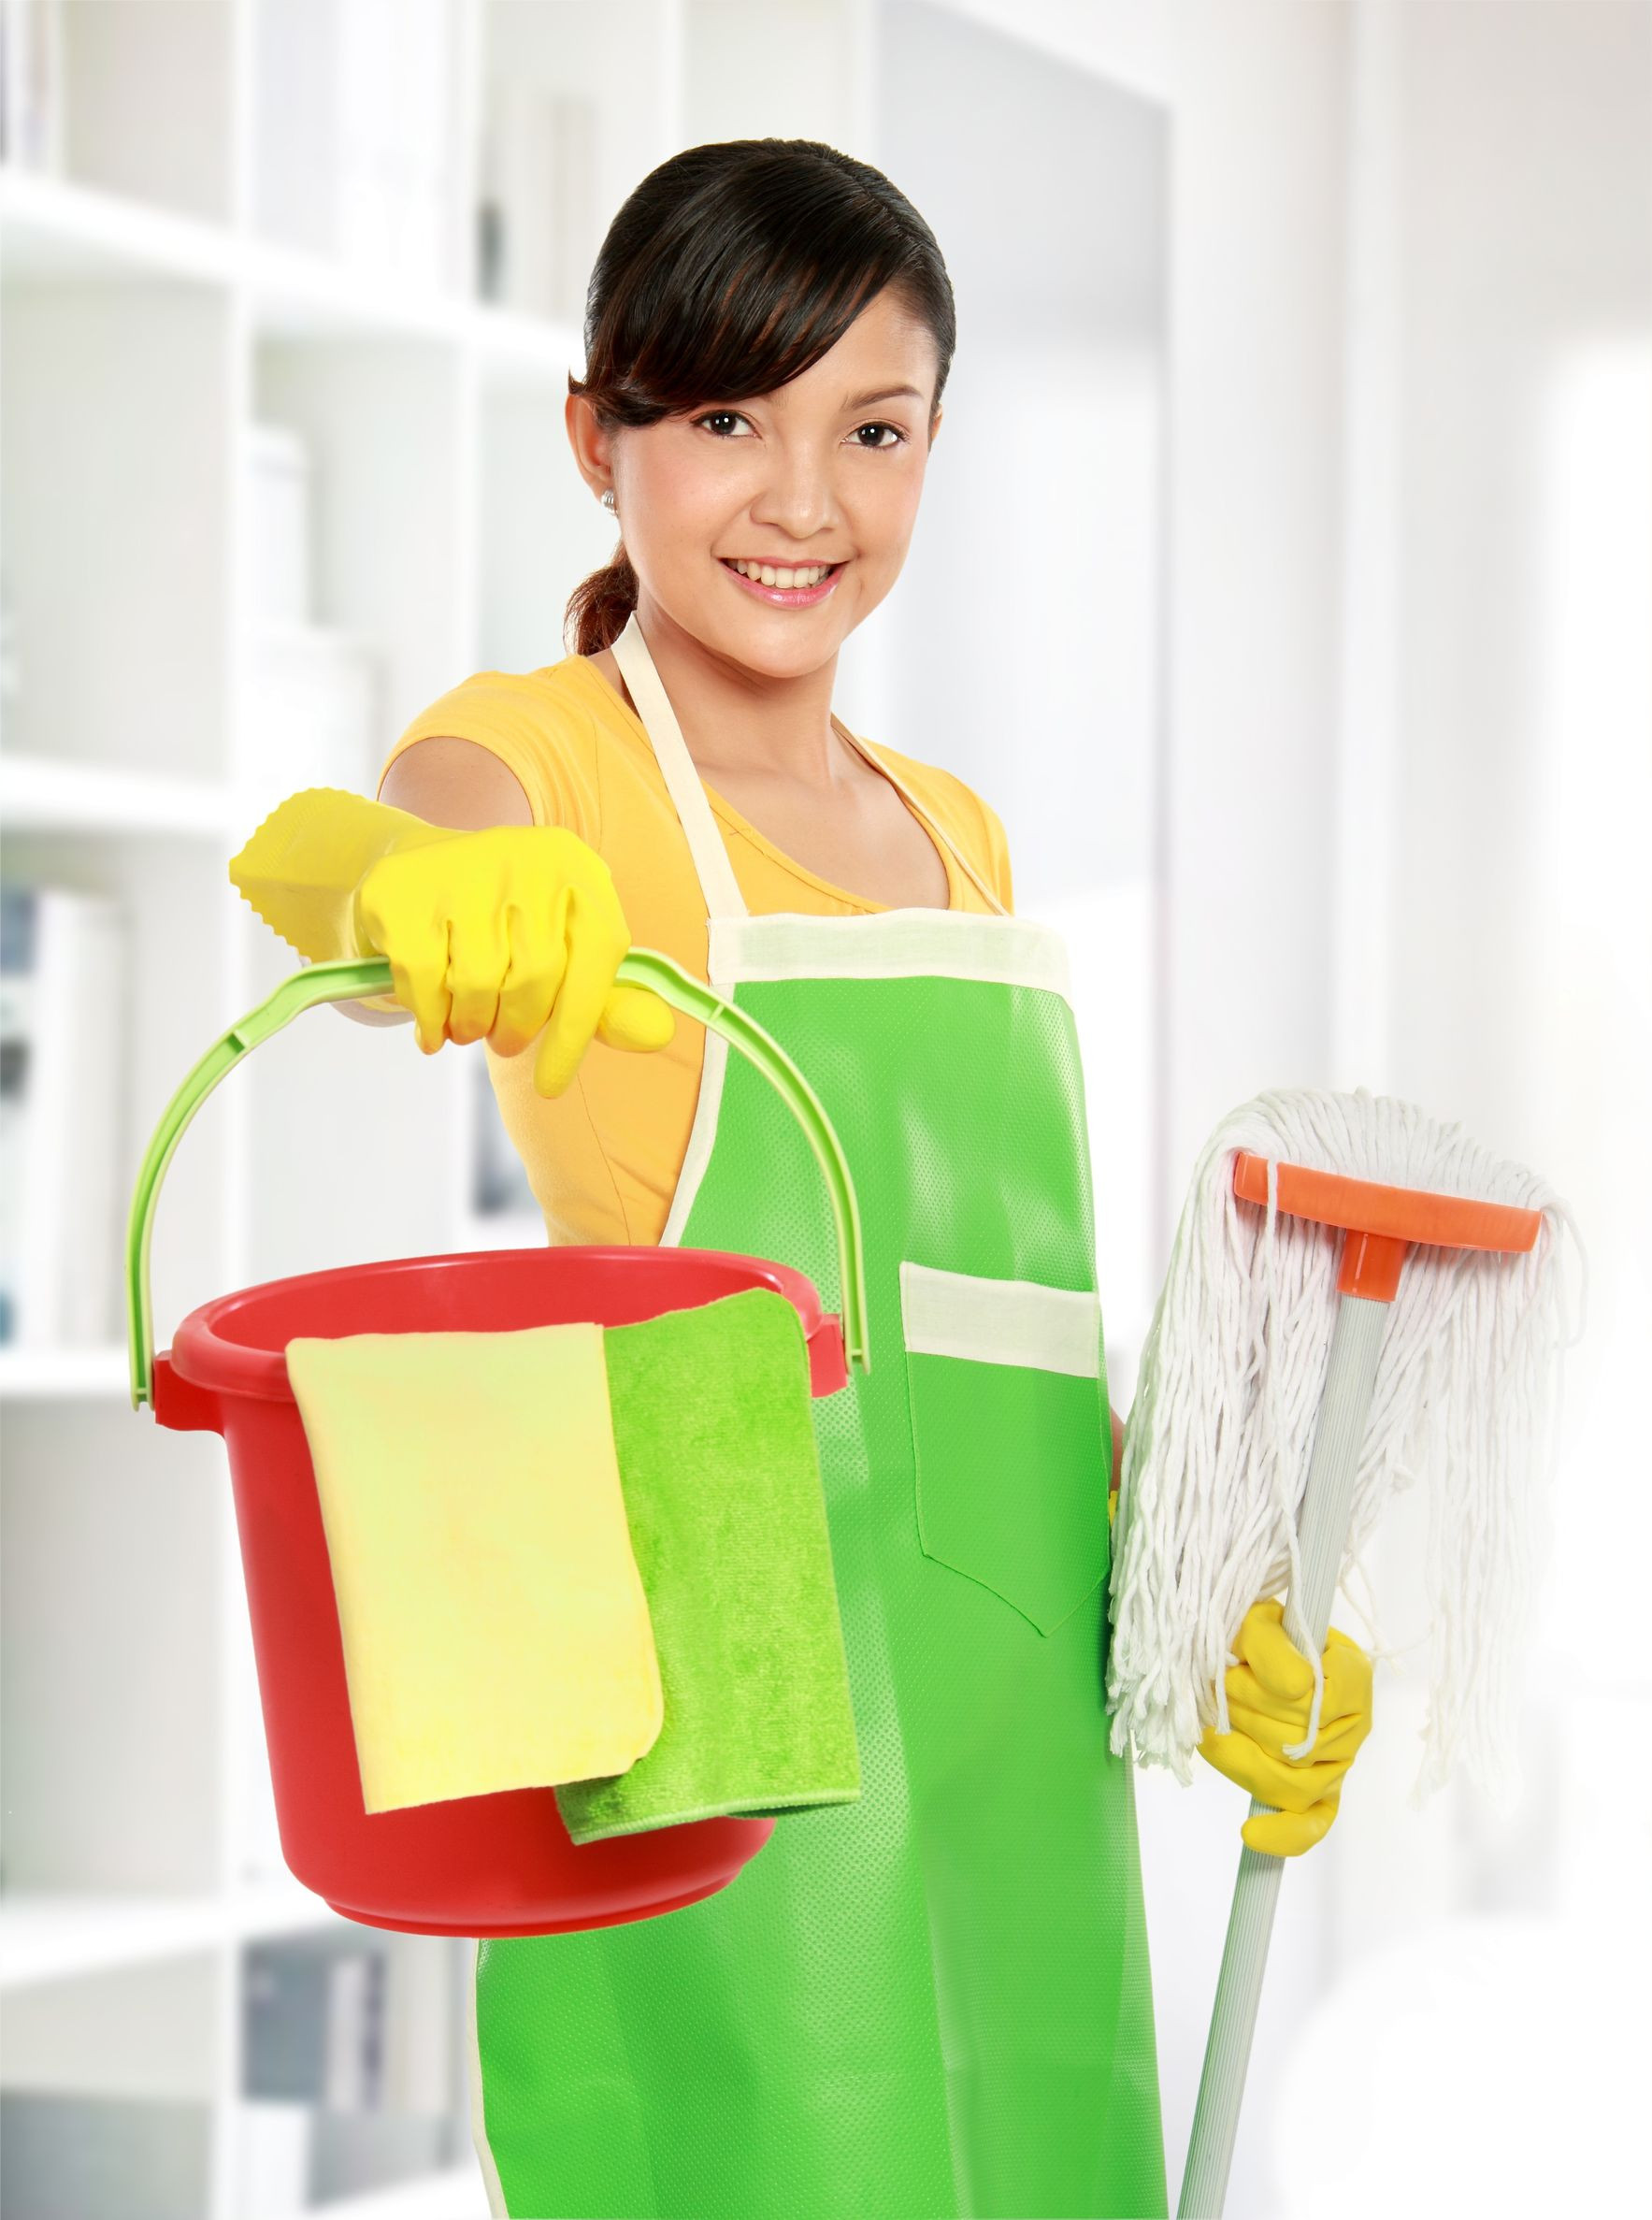 Japan To Hire Domestic Helpers From The Philippines